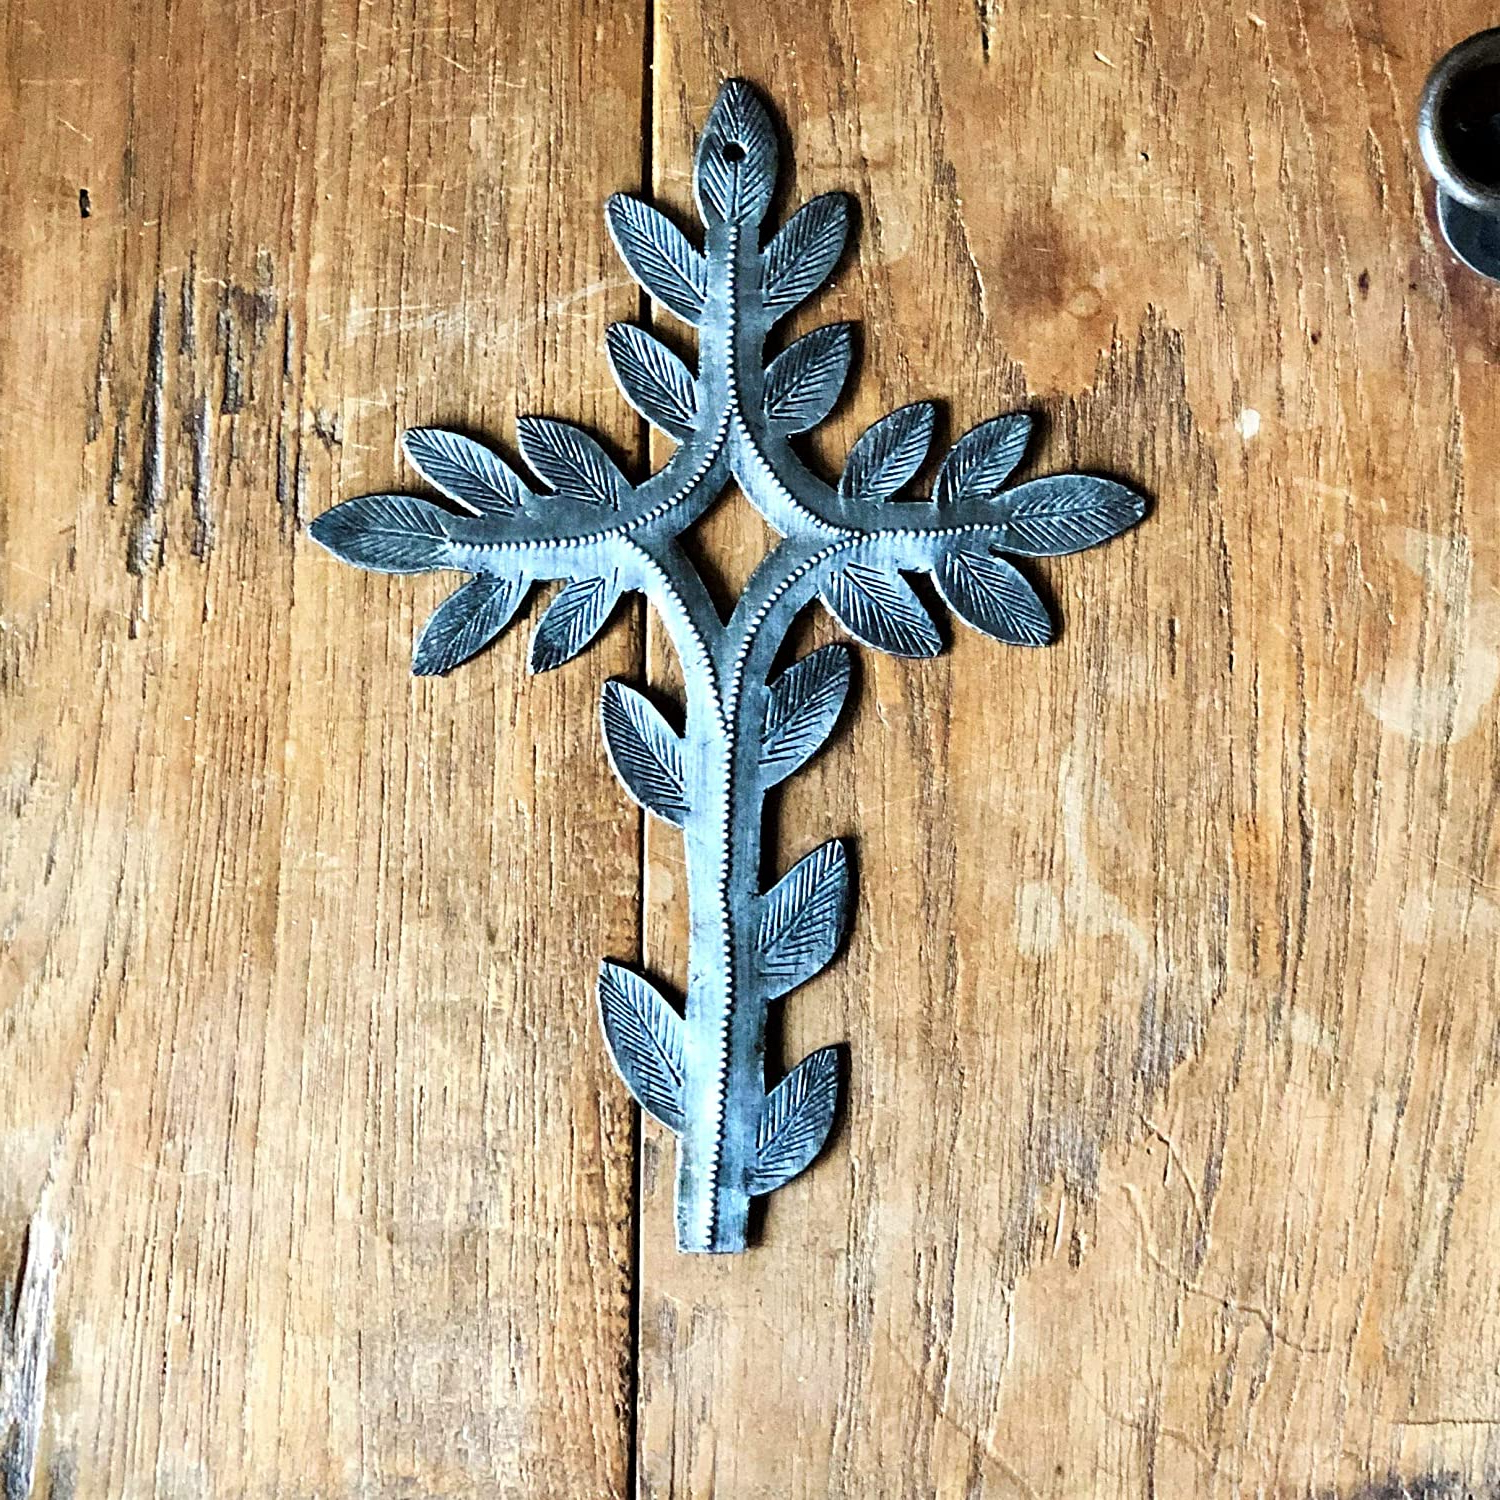 2019 Wall Cross Collection, Small Metal Cross With Leaf Design, Gift Exchange, Authentic Upcycled Artwork, Handmade, Spiritual Plaque, 5 X (View 20 of 20)